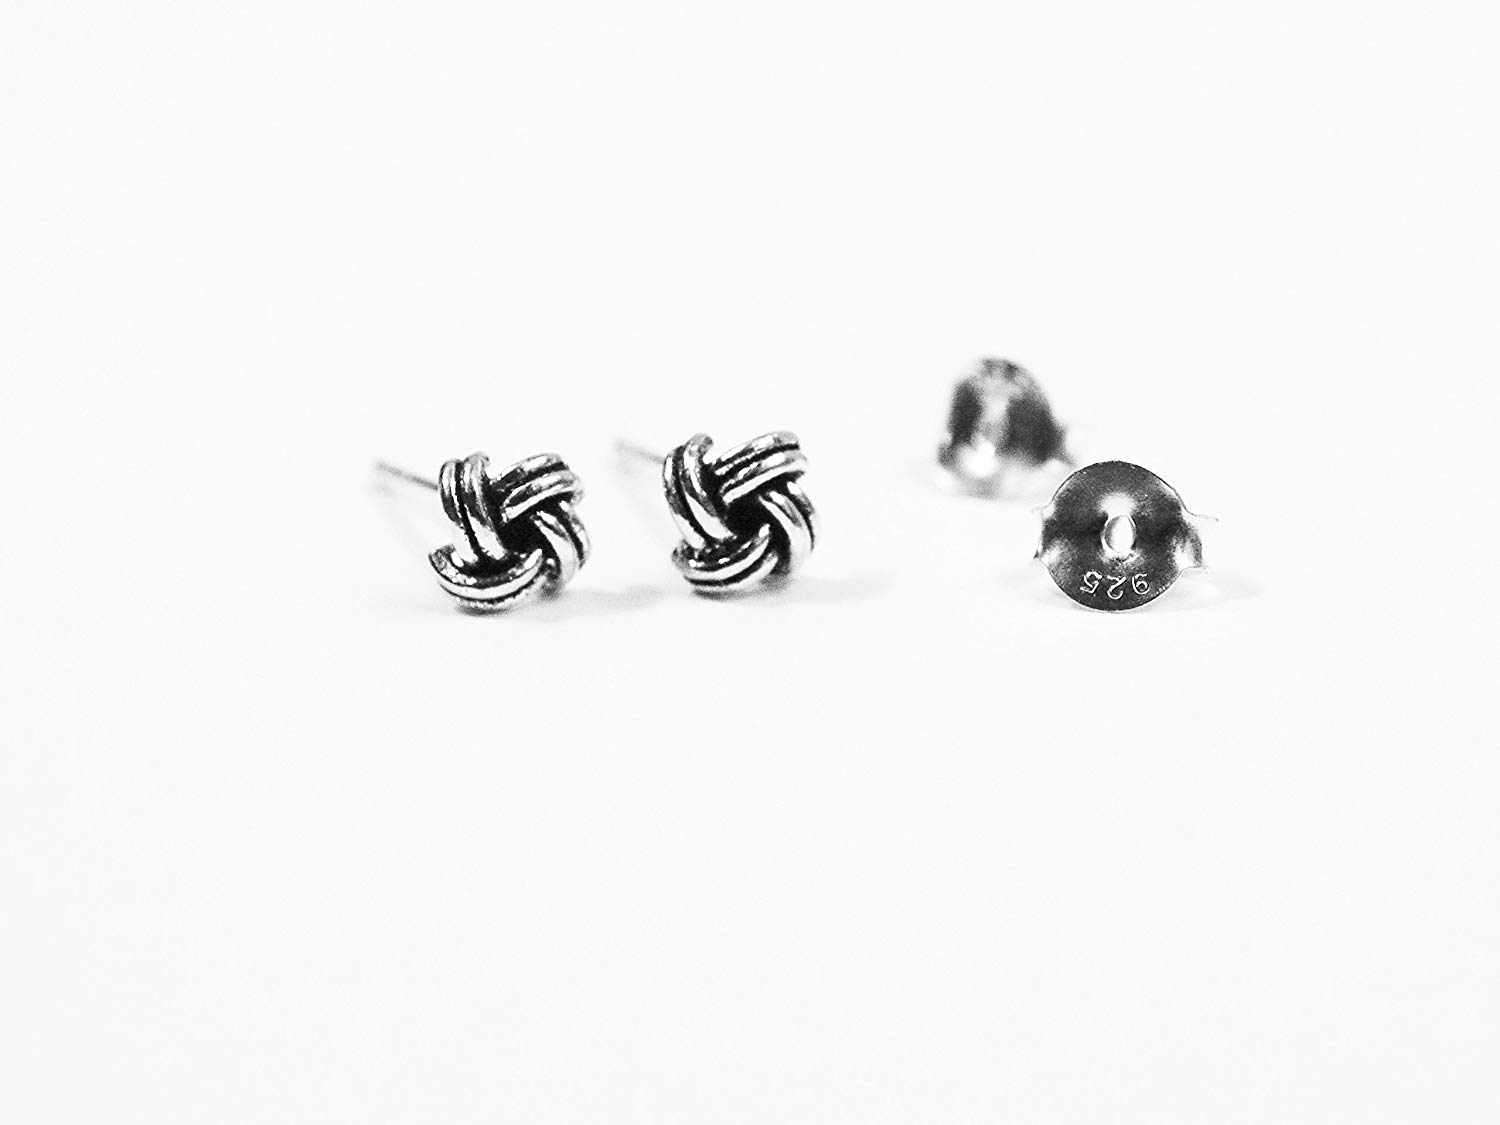 0d203faf3 Get Quotations · Sterling Silver Handcrafted Tiny Love Knot Stud Earrings  With Oxidized Finish 5mm - Women and Children